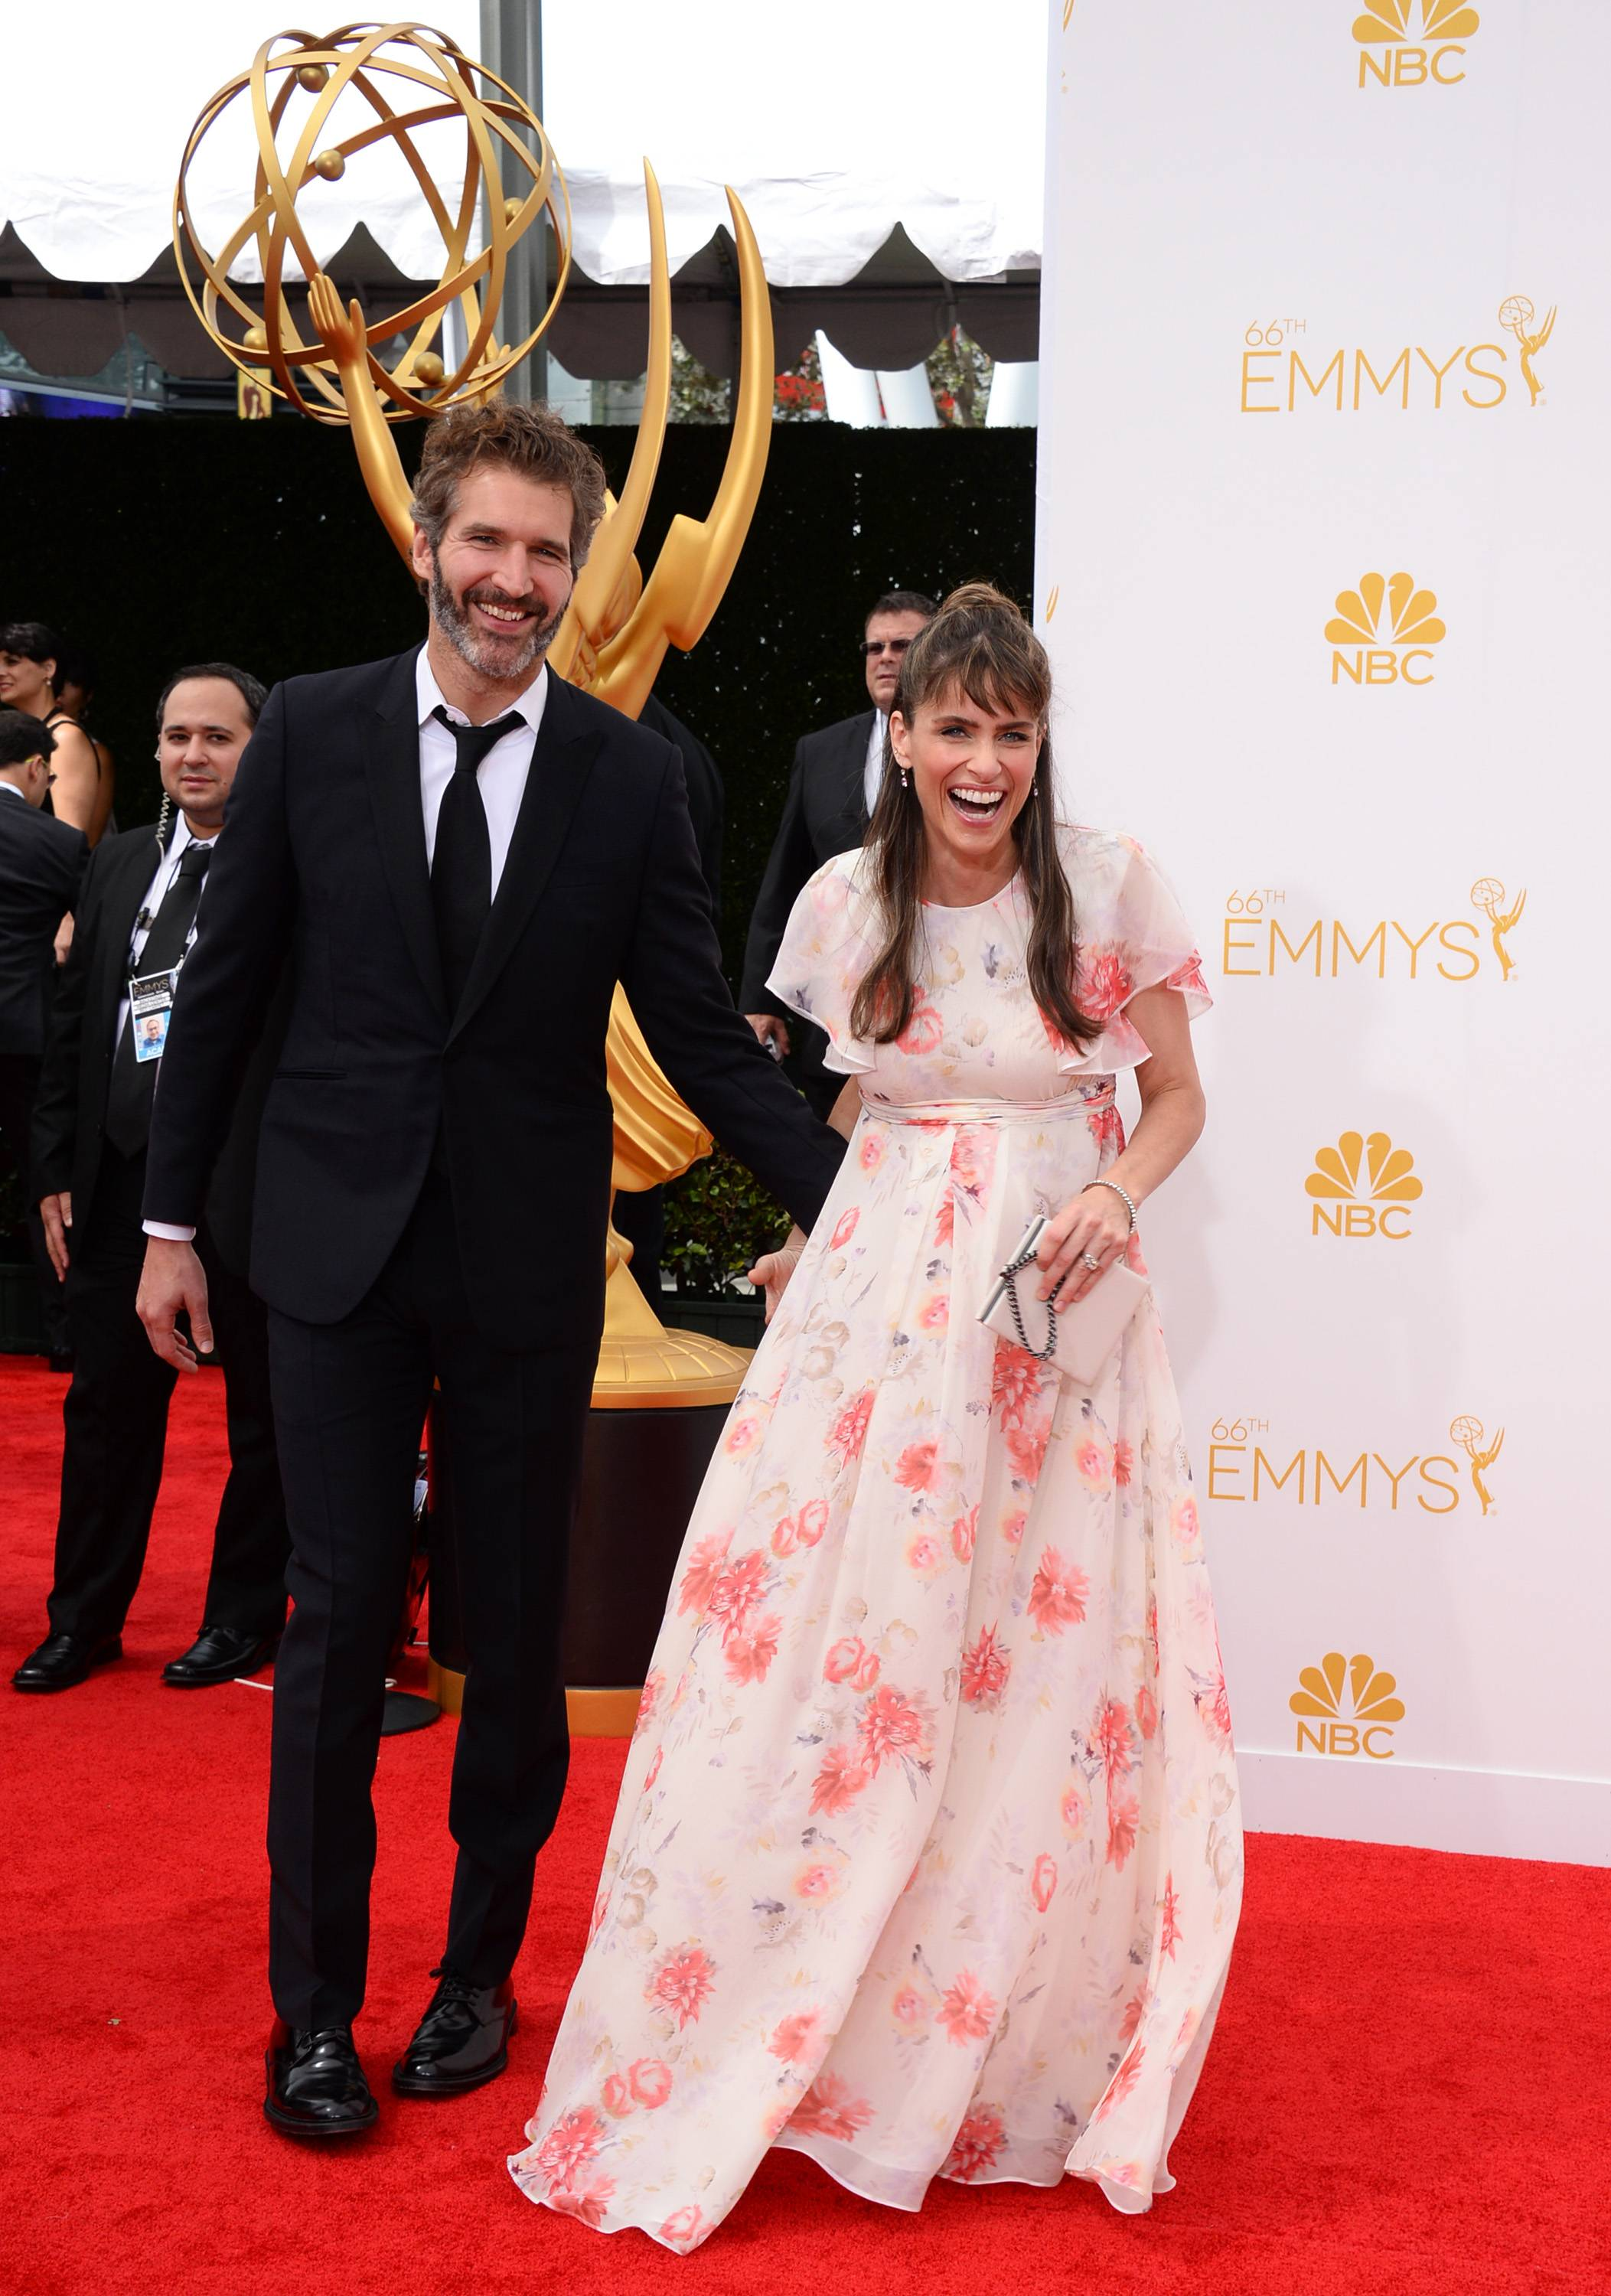 David Benioff, left, and Amanda Peet arrive at the 66th Annual Primetime Emmy Awards.